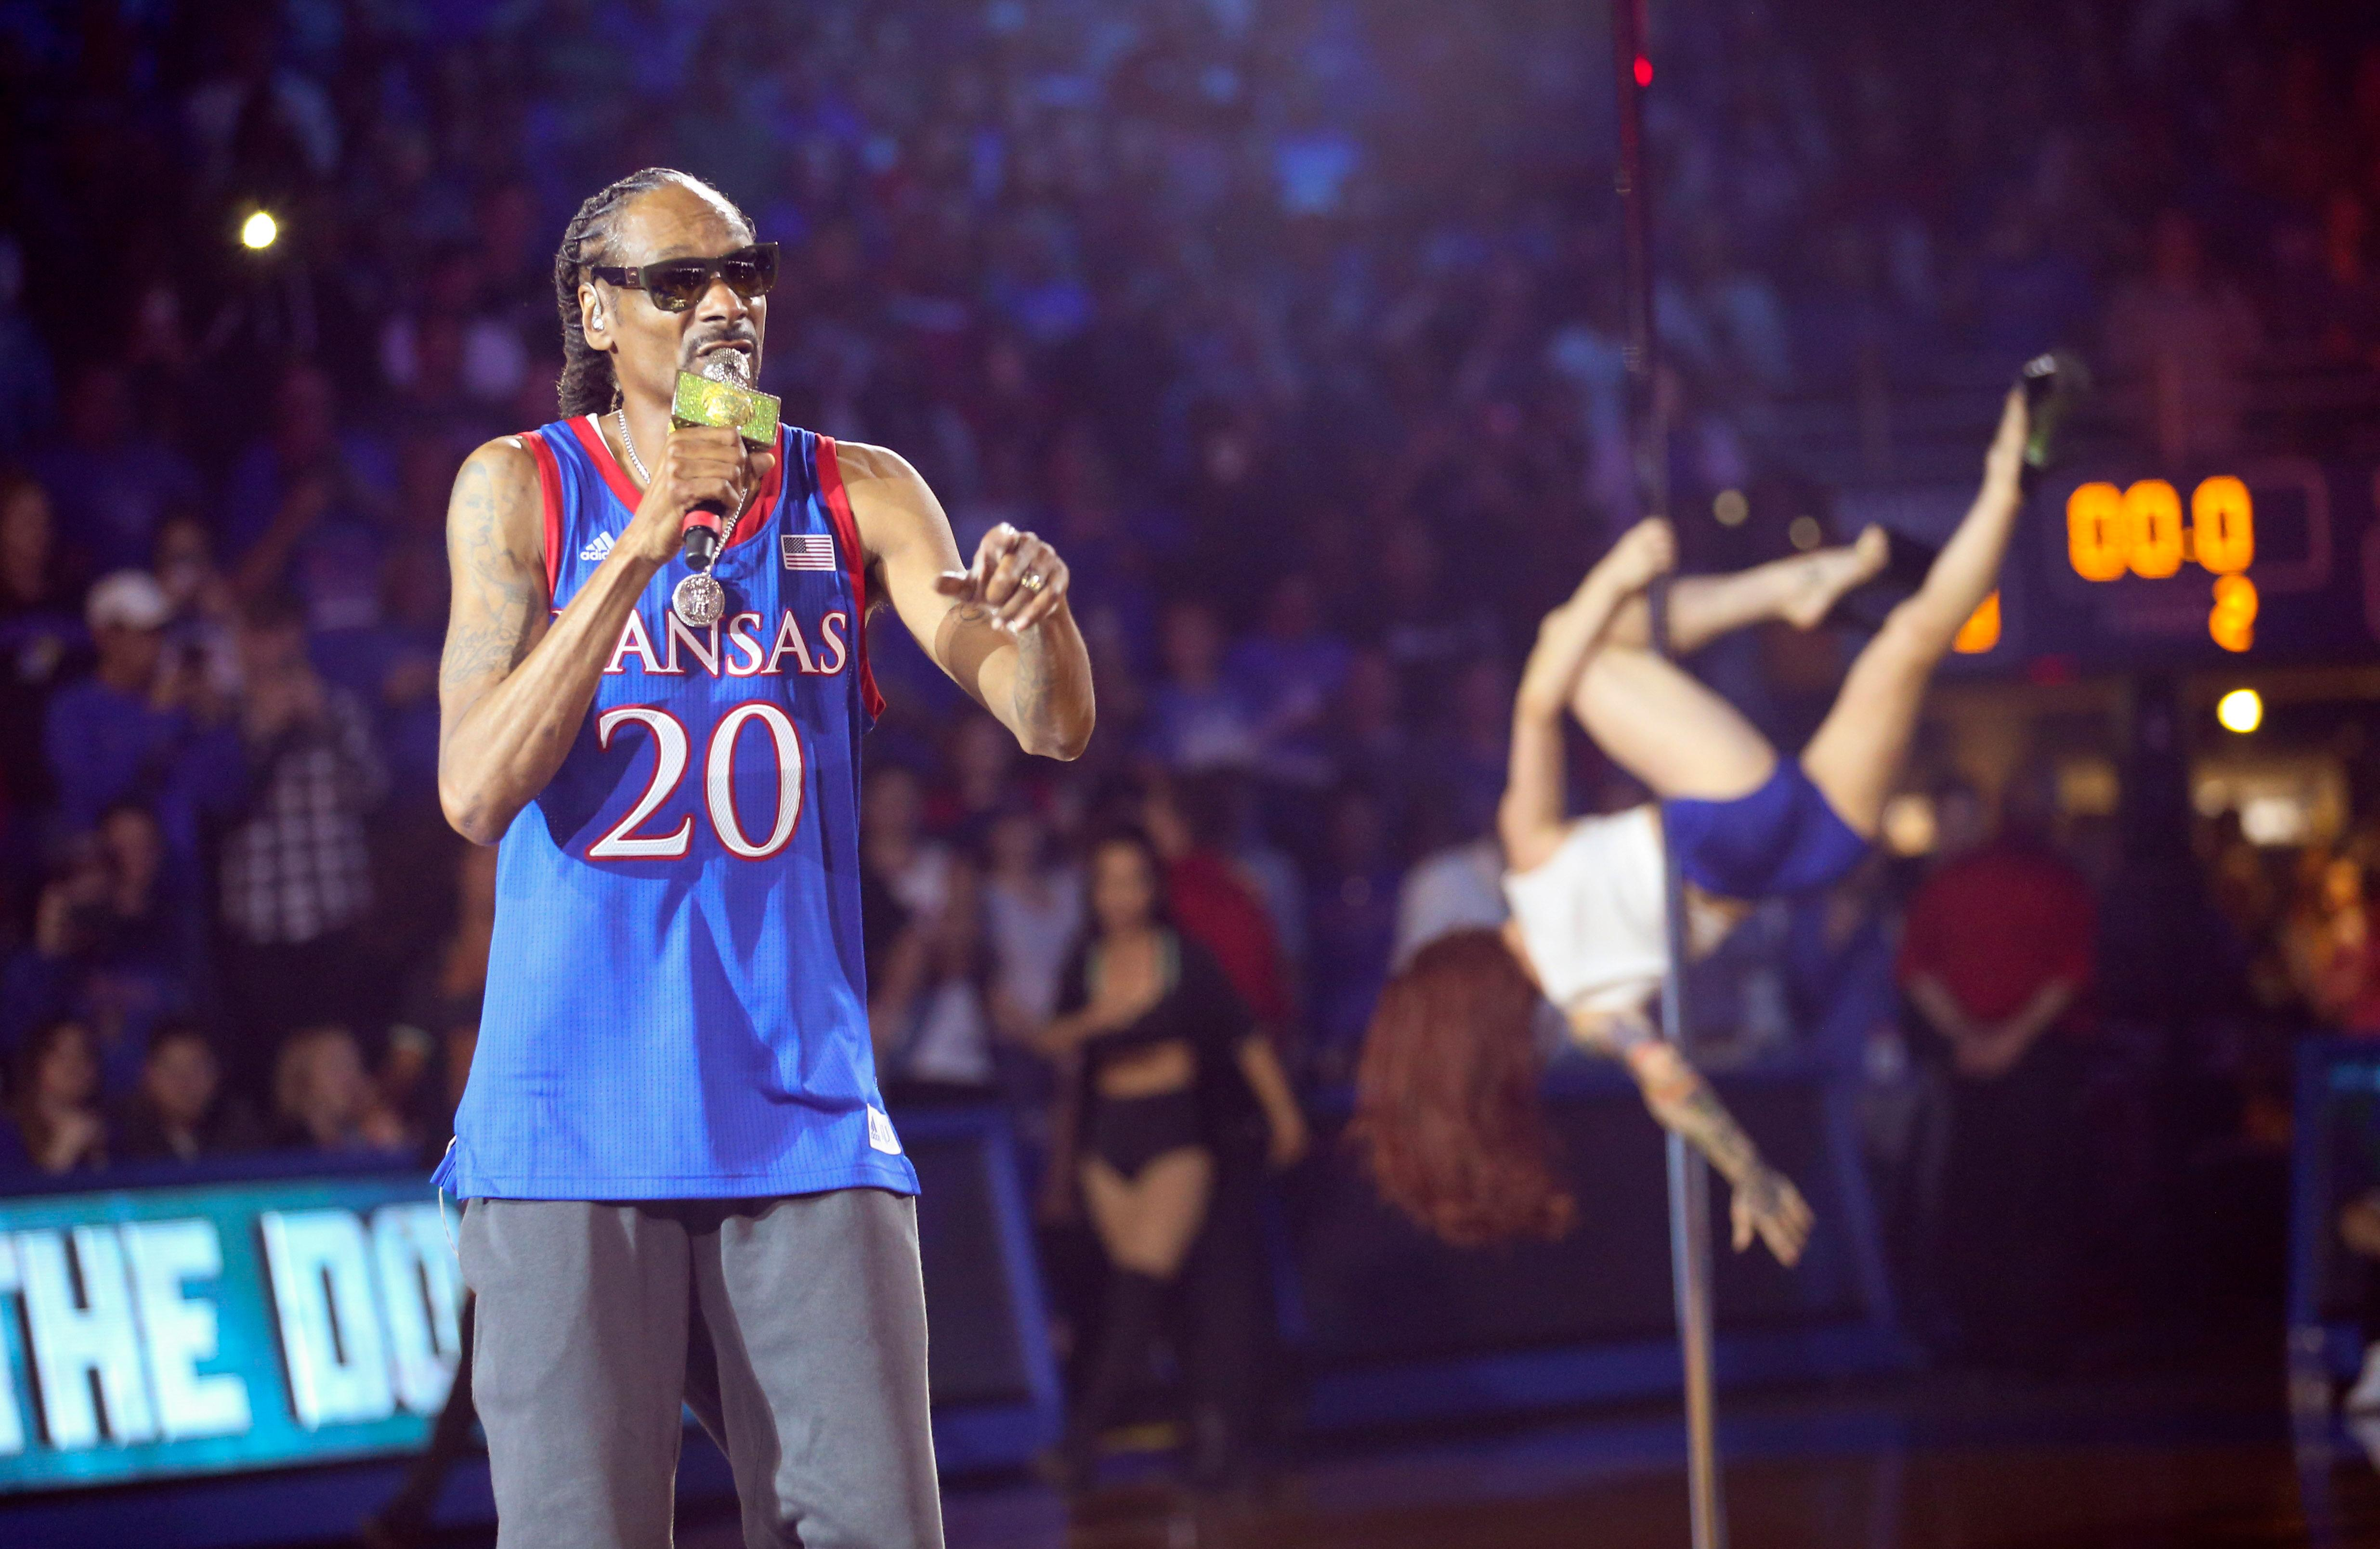 In this Friday, Oct. 4, 2019 photo, rapper Snoop Dogg performs during Late Night in the Phog, Kansas' annual NCAA college basketball kickoff, at Allen Fieldhouse in Lawrence, Kan. (Nick Krug/The Lawrence Journal-World via AP)